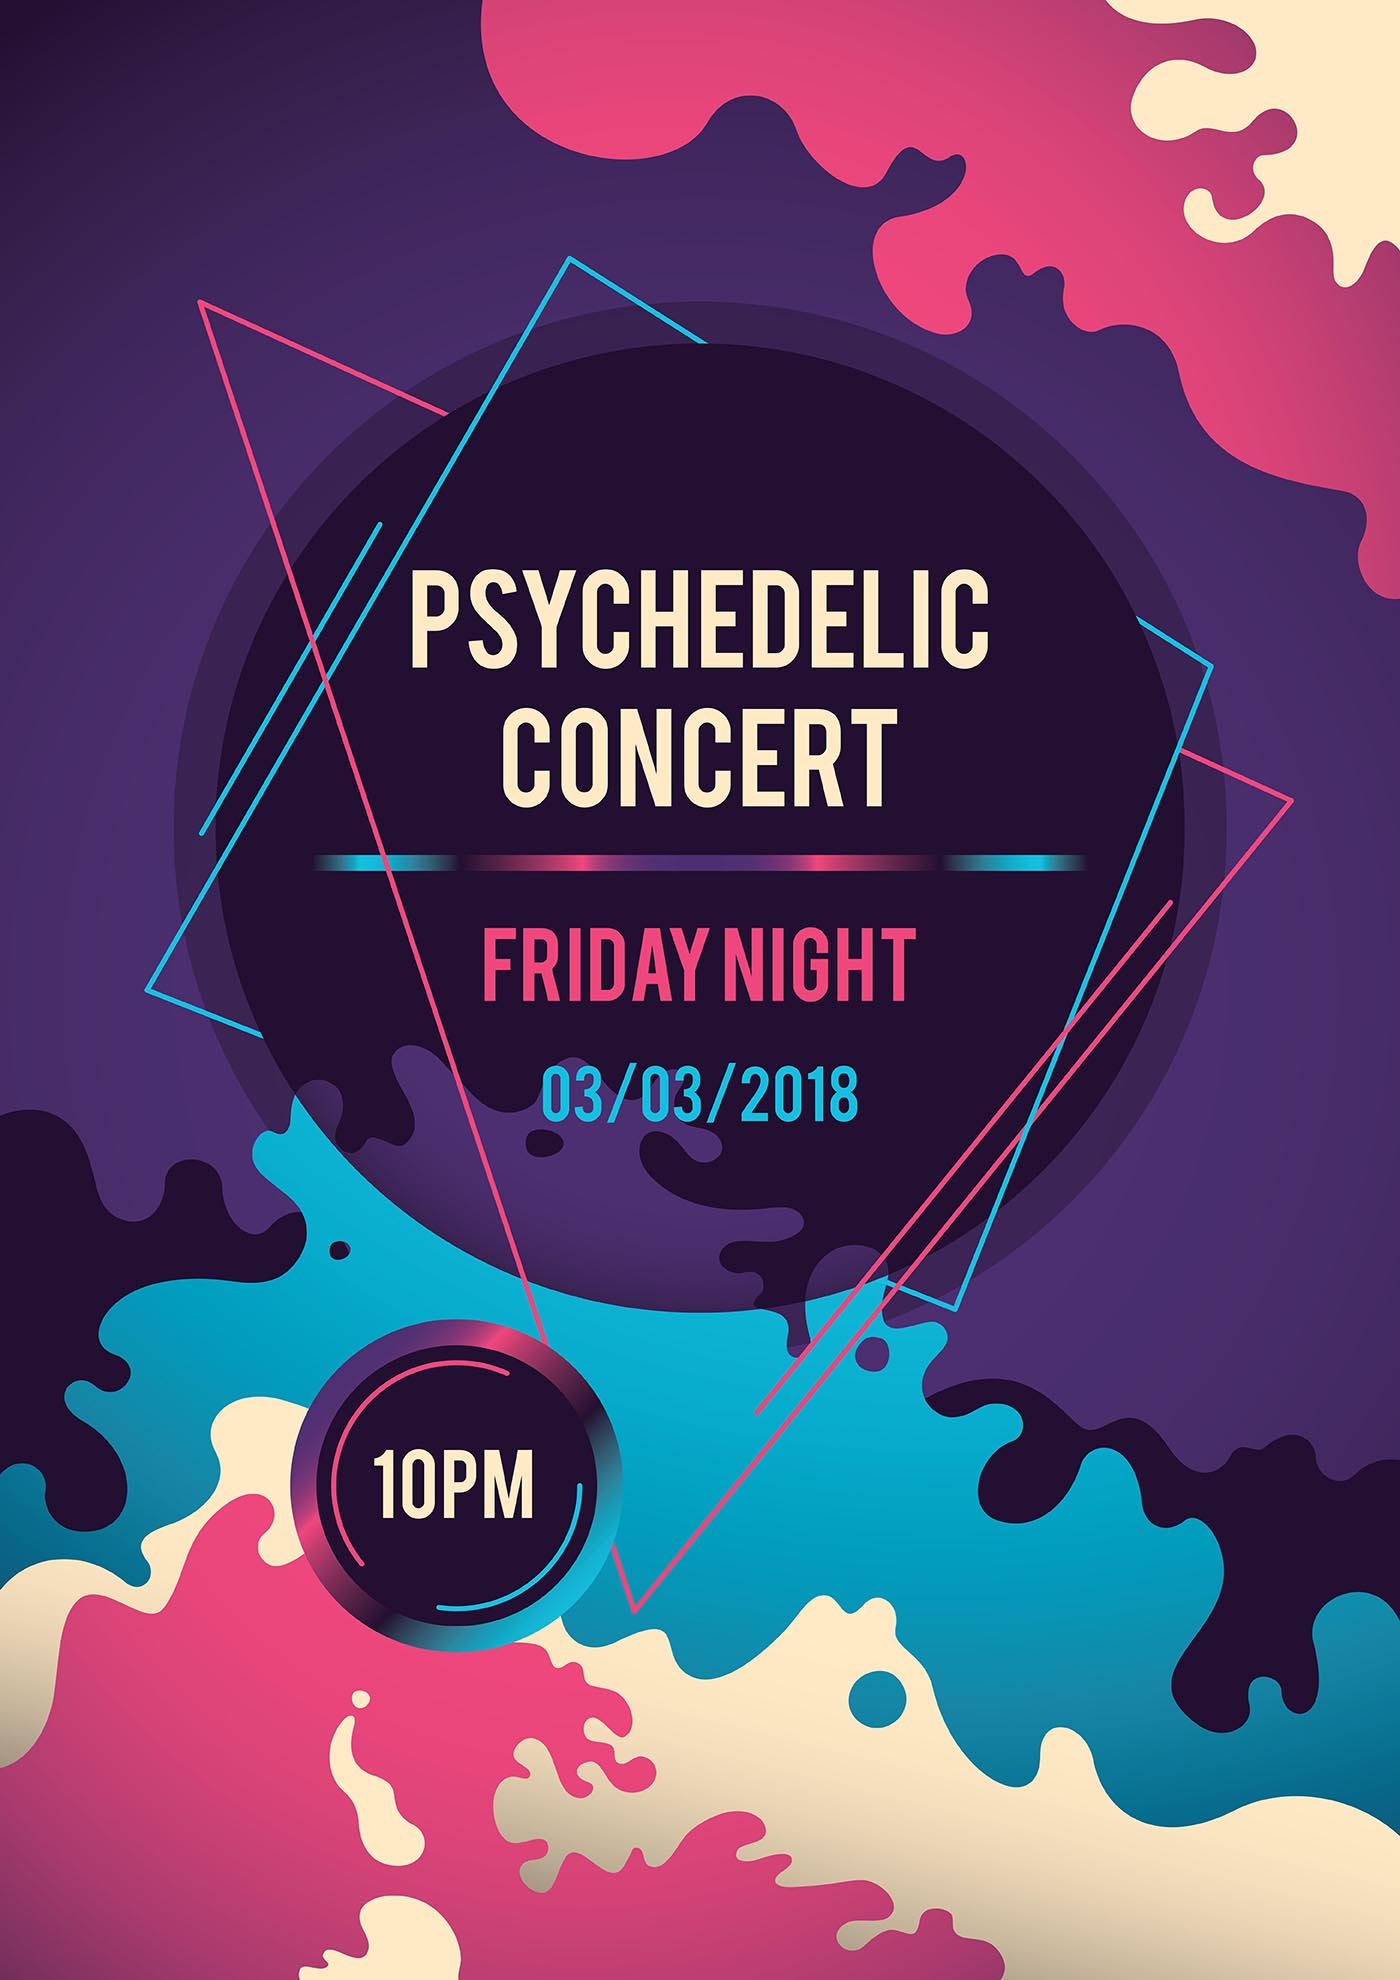 psychedelic concert poster   download free vectors